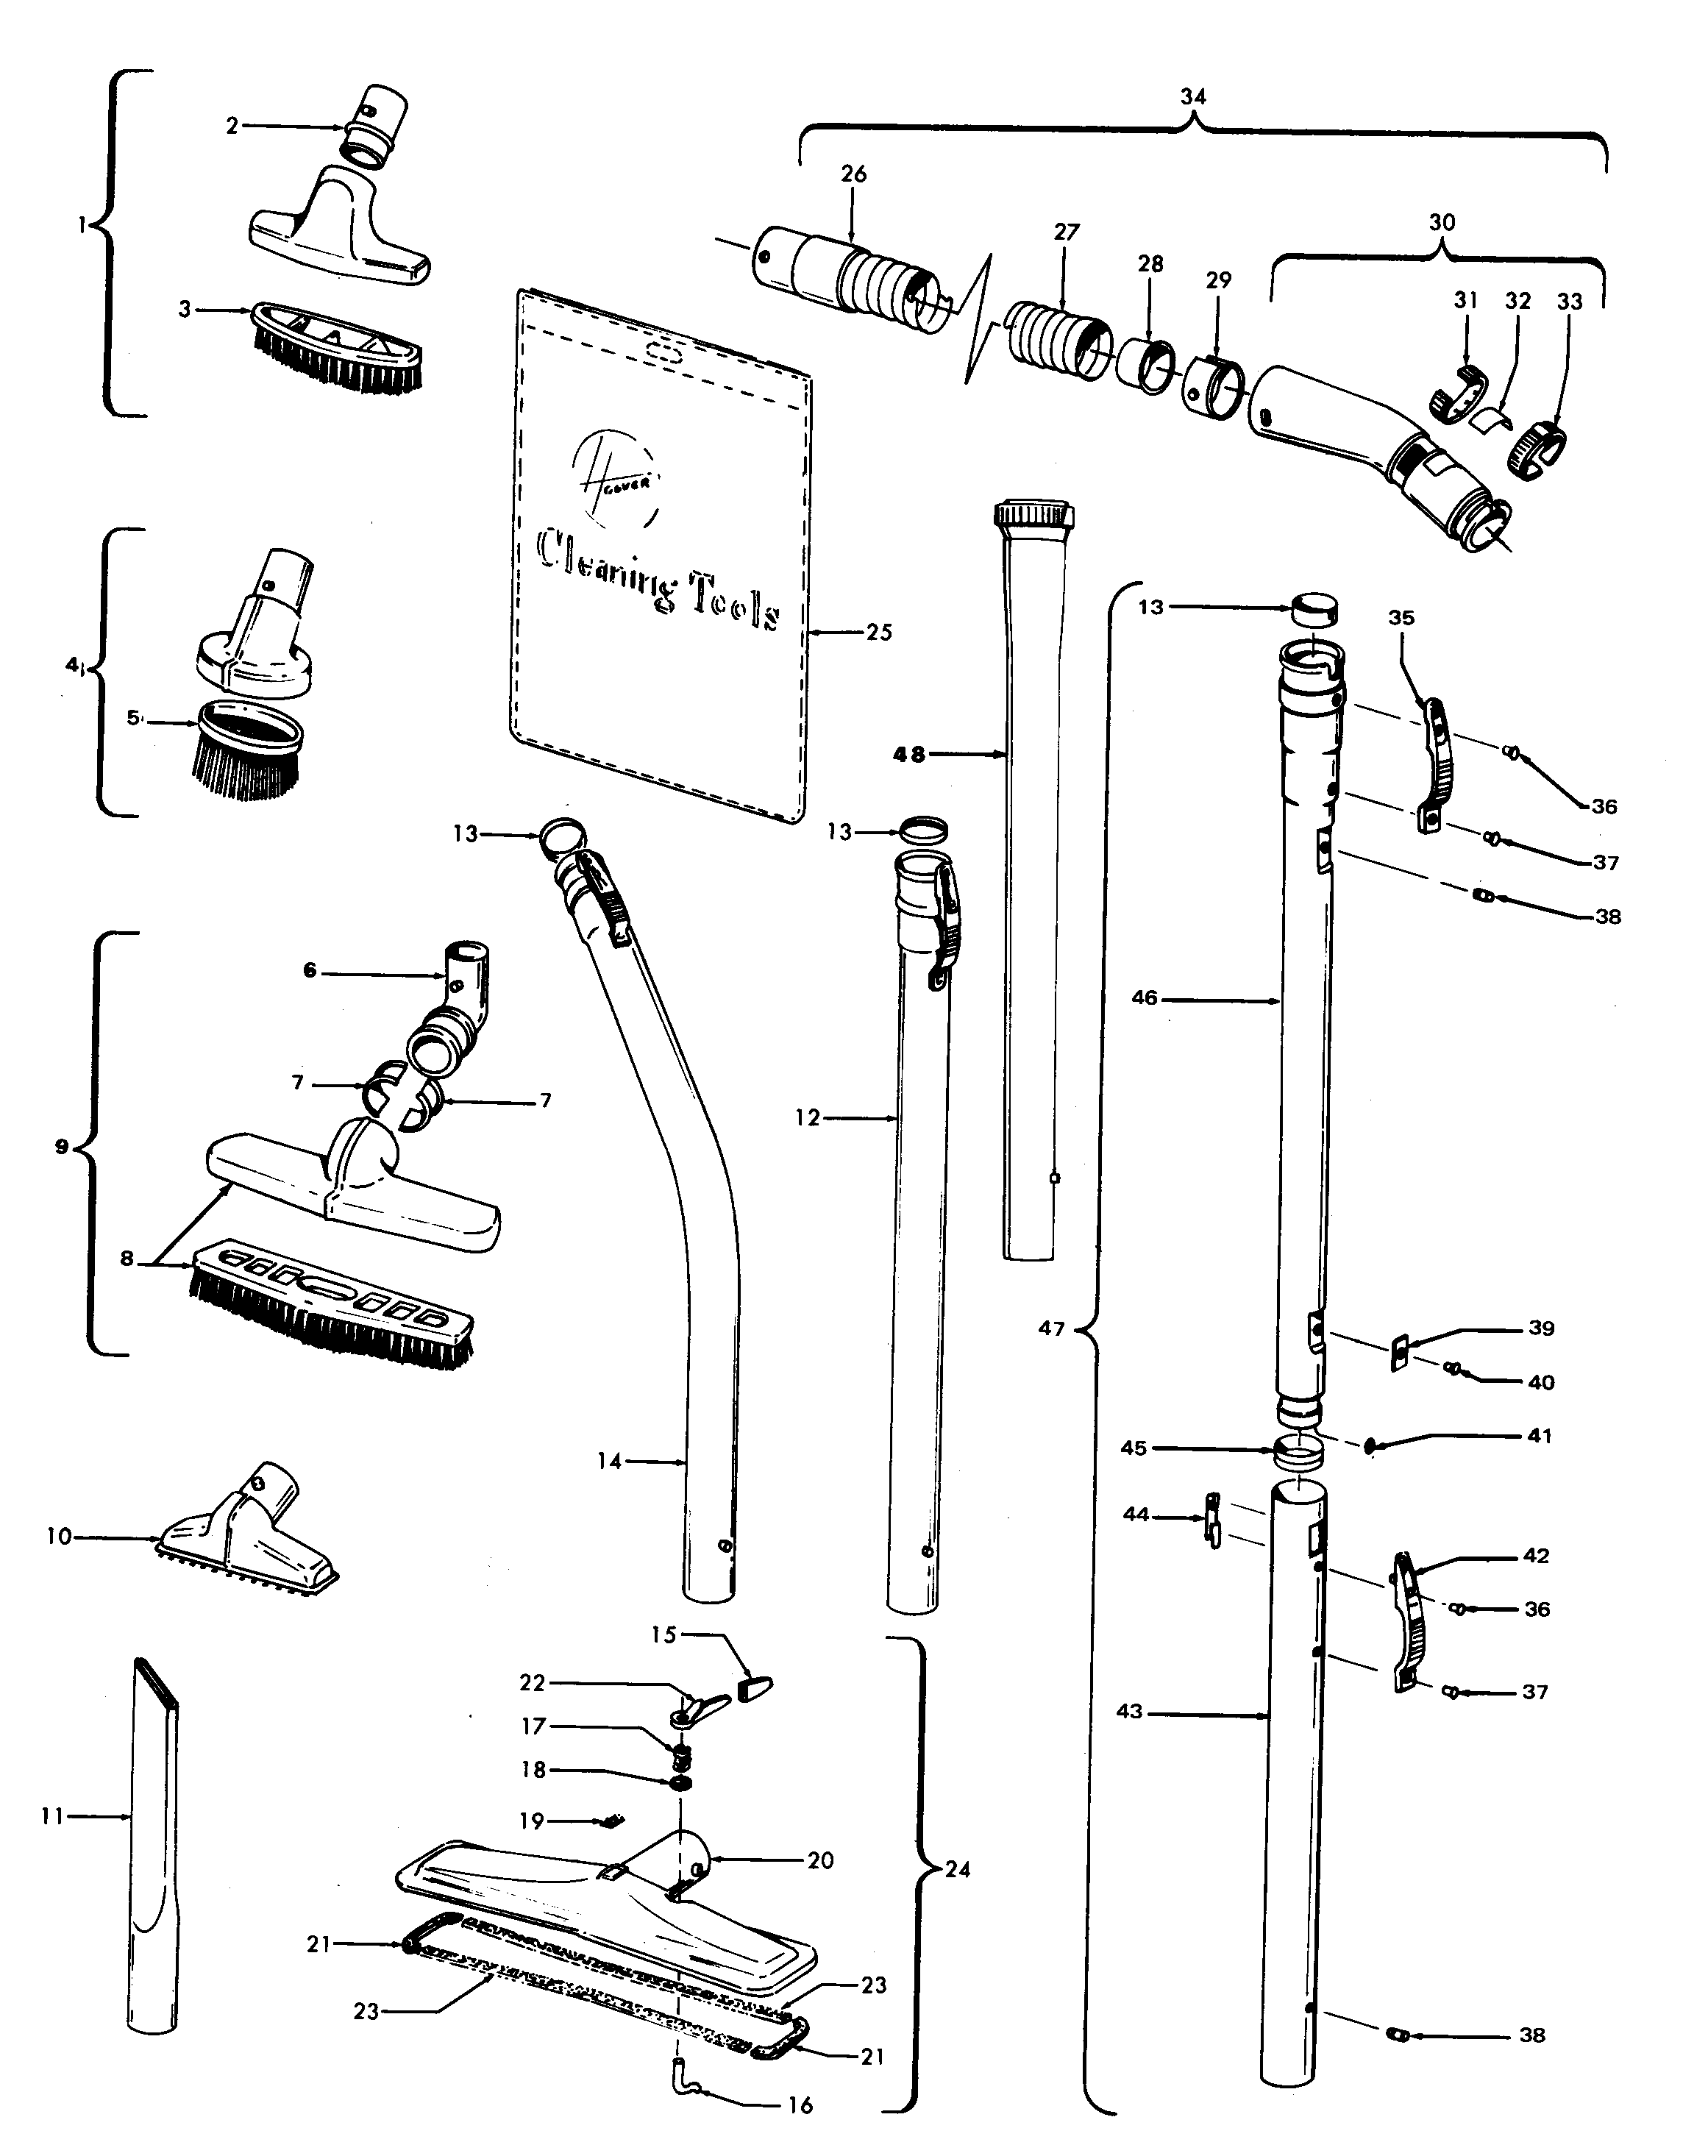 Hoover 65 cleaningtools diagram